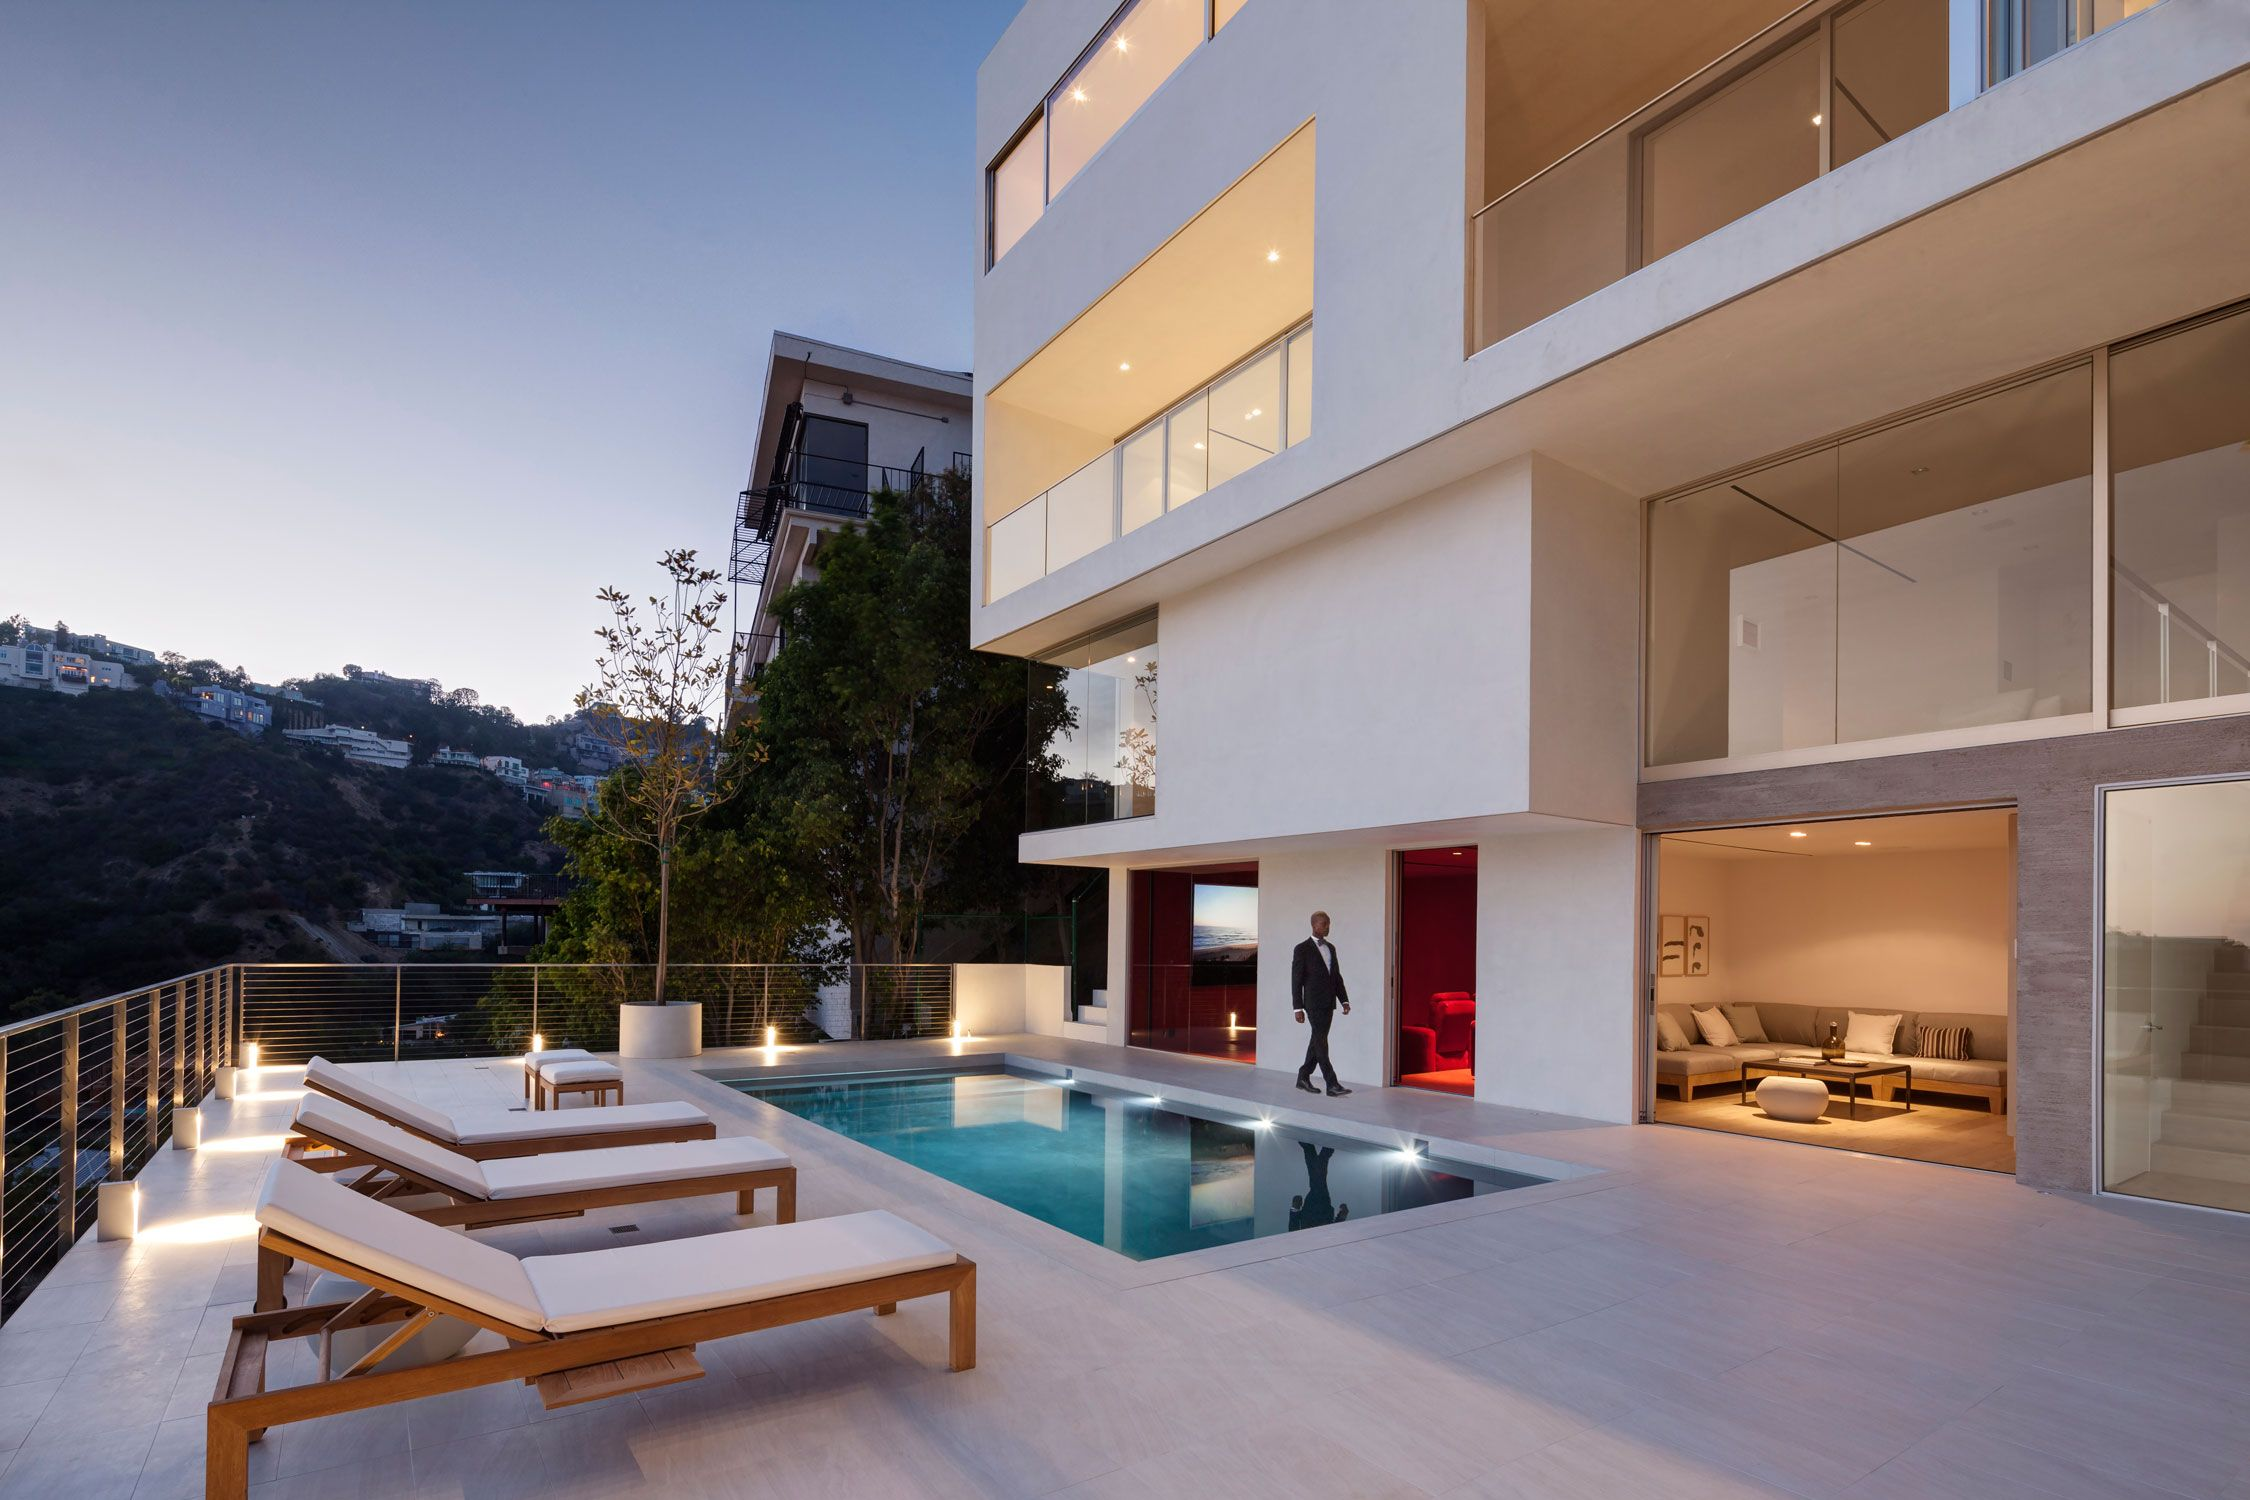 Attractive Have A Look At The Private Residence By Architects GWdesign  (www.gwdesign.com Great Ideas